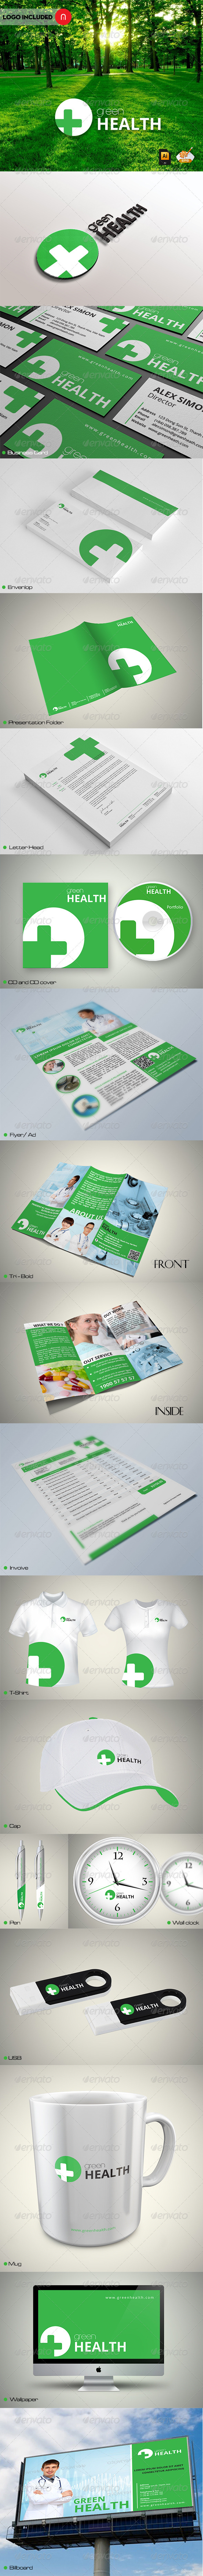 Green Health Corporate Identity - Stationery Print Templates